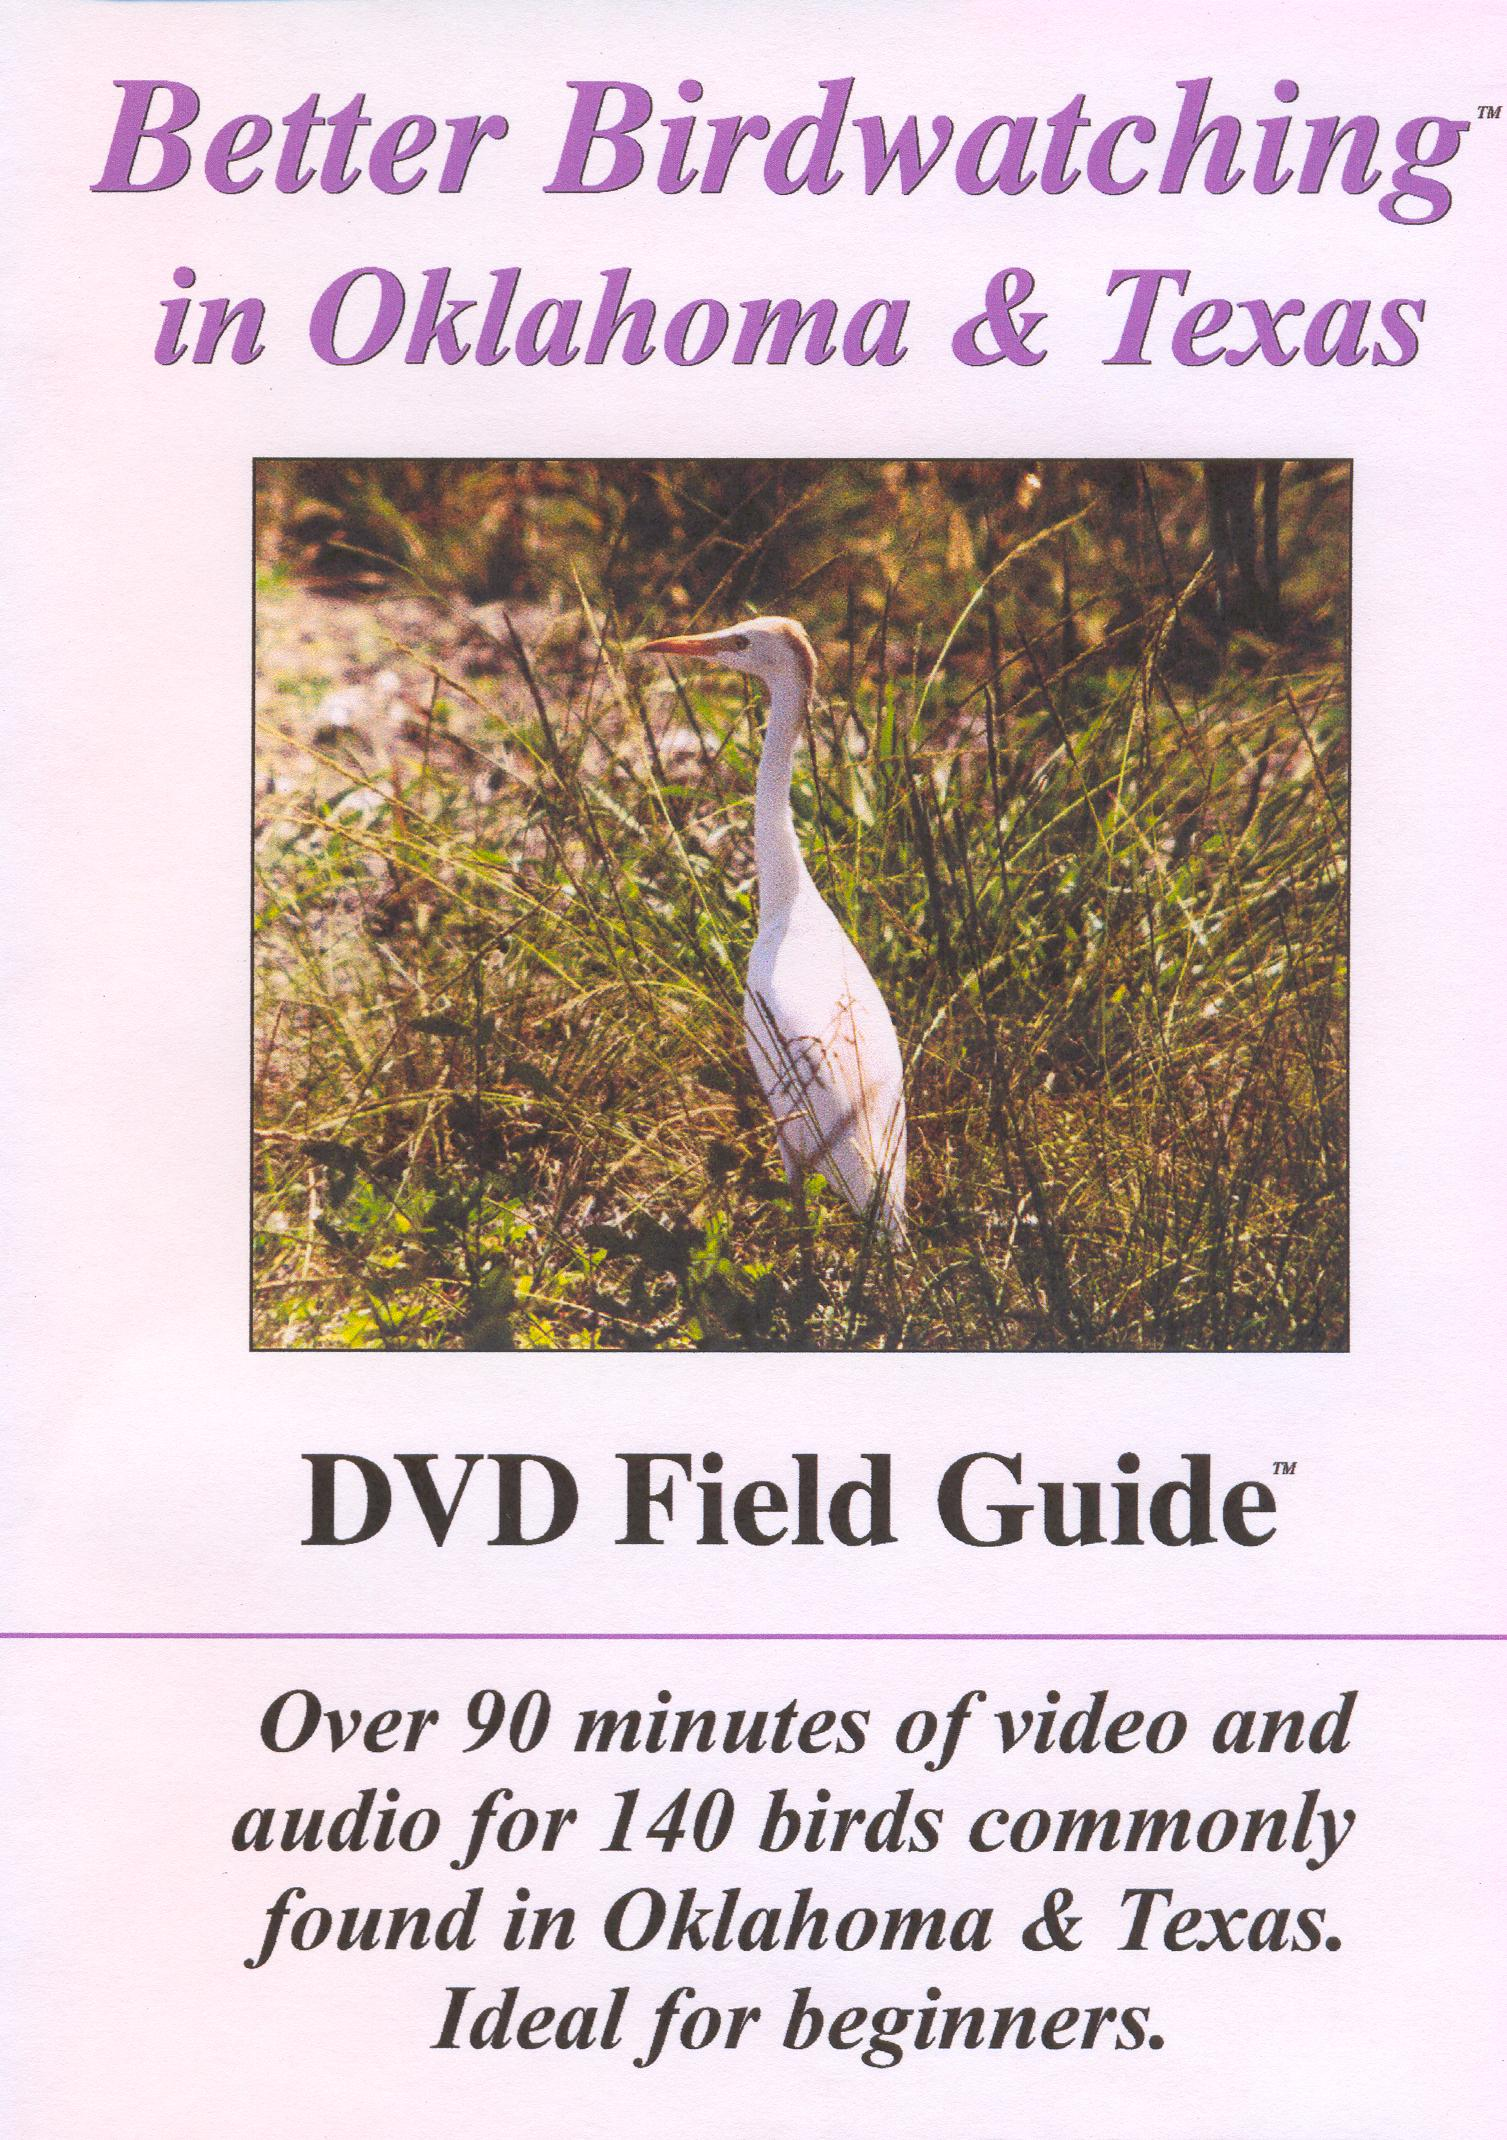 Better Birdwatching in Oklahoma and Texas